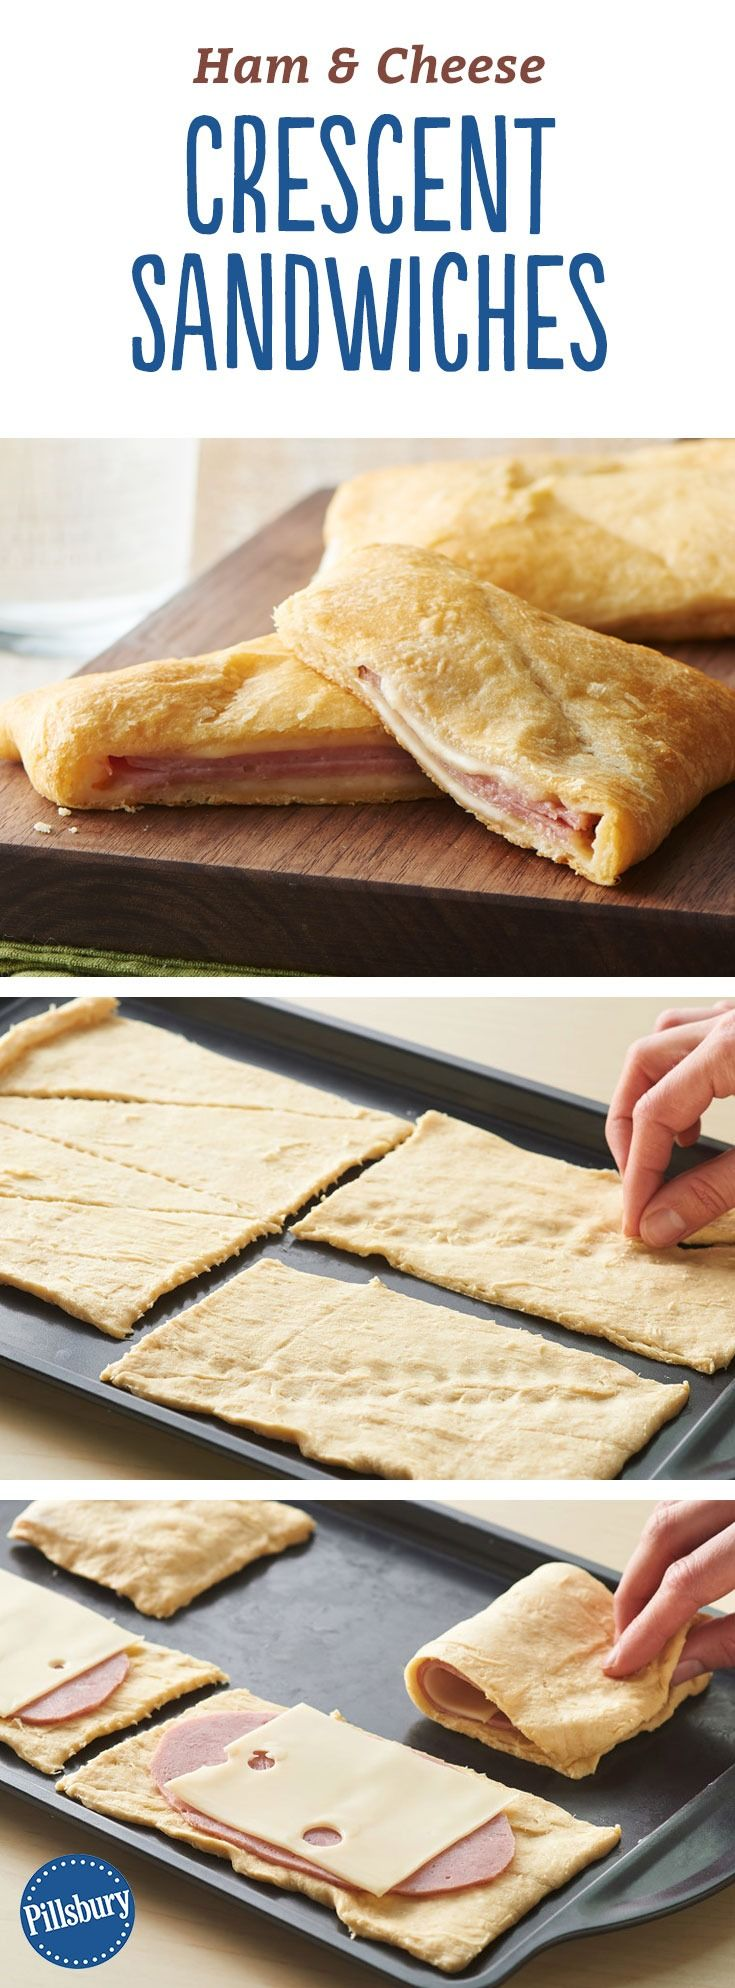 Ham and Cheese Crescent Sandwiches - You only need three ingredients to create these easy sandwiches. Serve with soup or a salad for a complete meal!